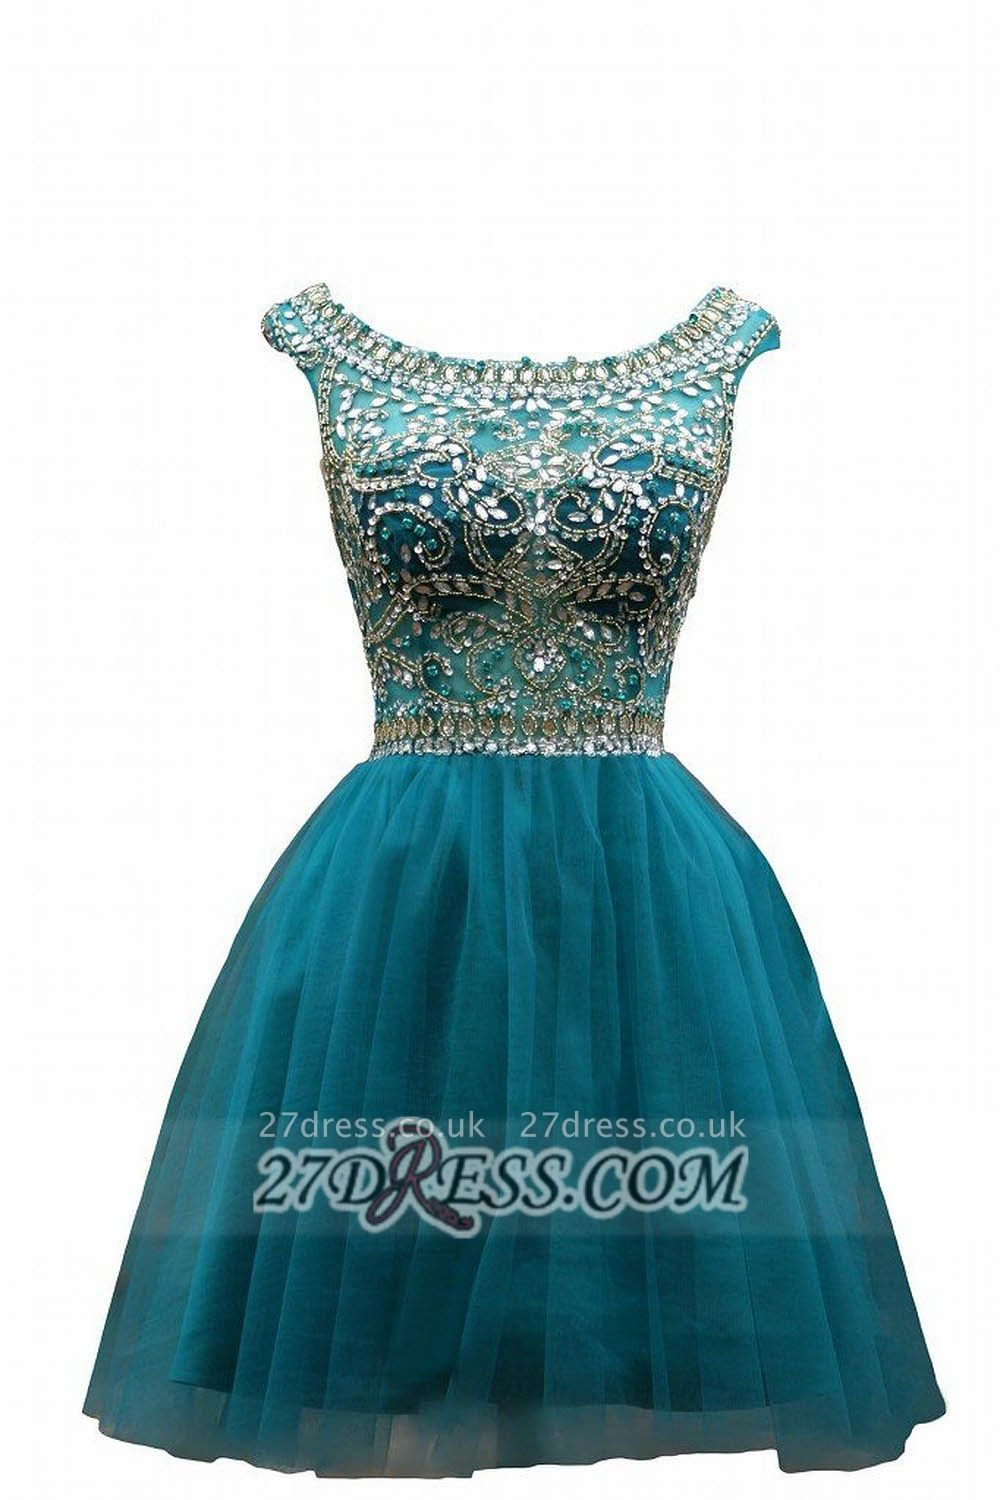 Sexy Scoop Cap Sleeve Cocktail Dress UK Crystals Tulle Short Homecoming Gown